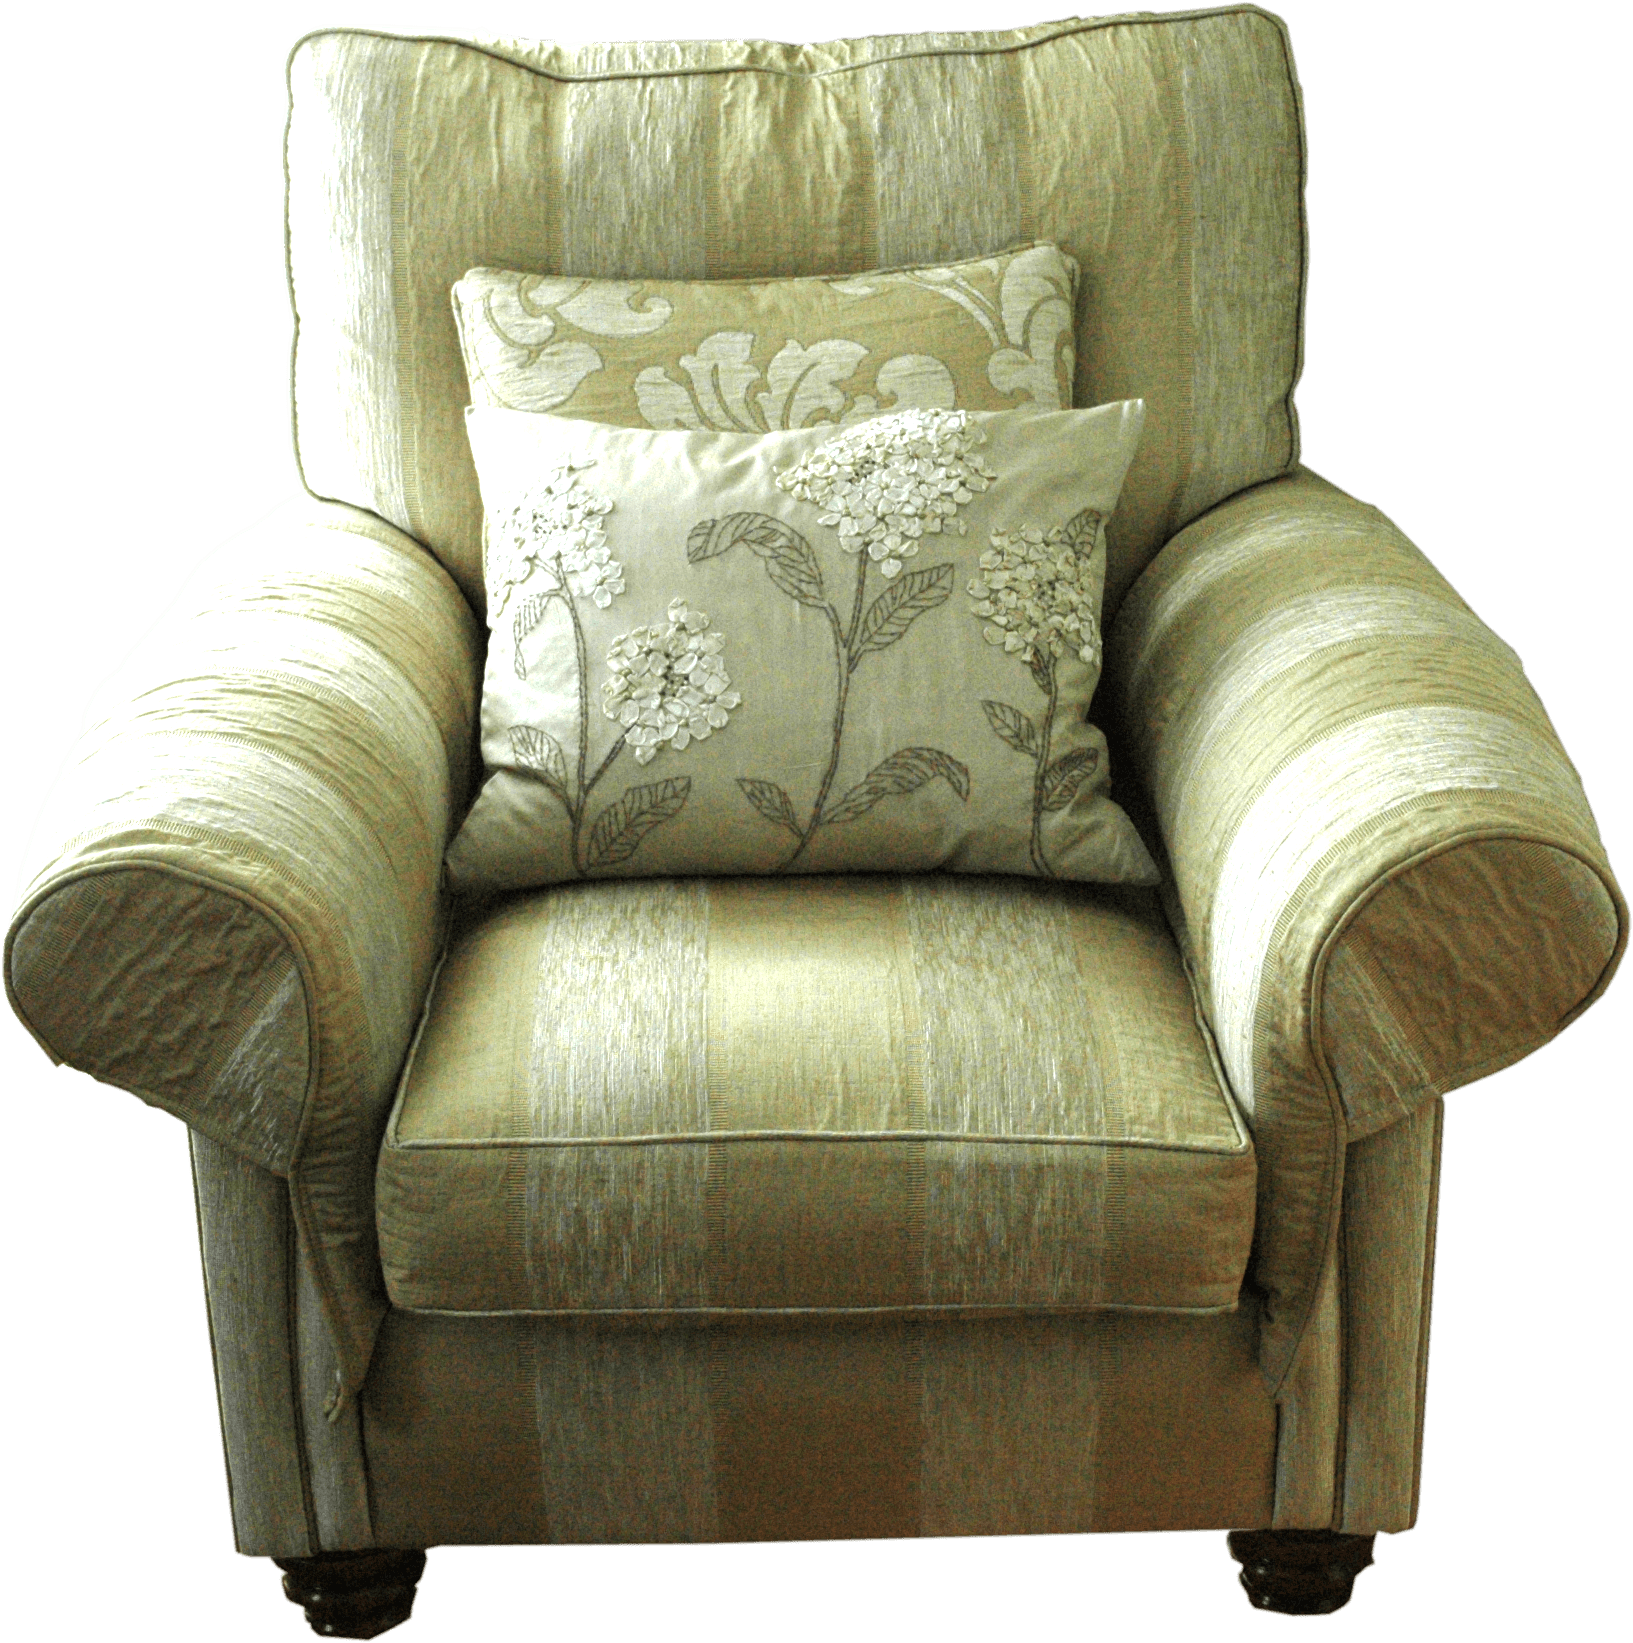 Old couch png. Green armchair transparent stickpng